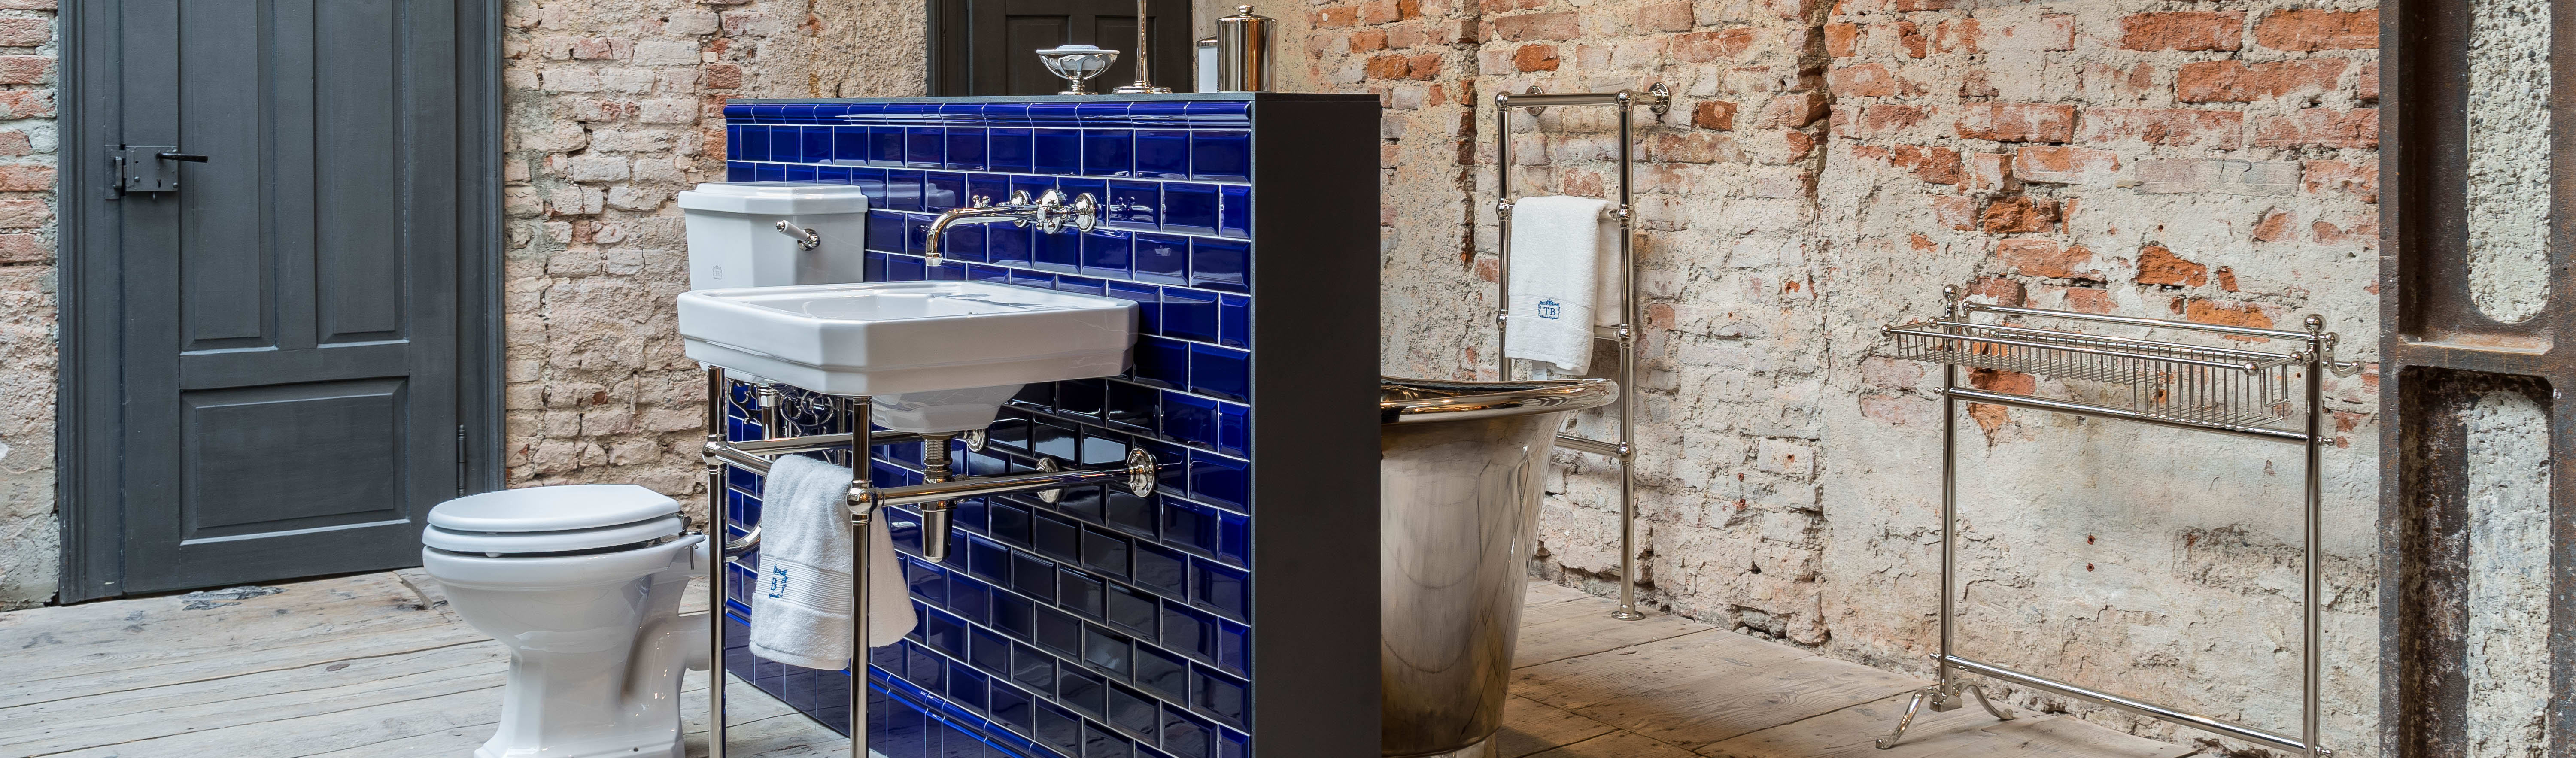 Nostalgische Badezimmer Accessoires Nostalgie Bad Von Traditional Bathrooms Gmbh Homify